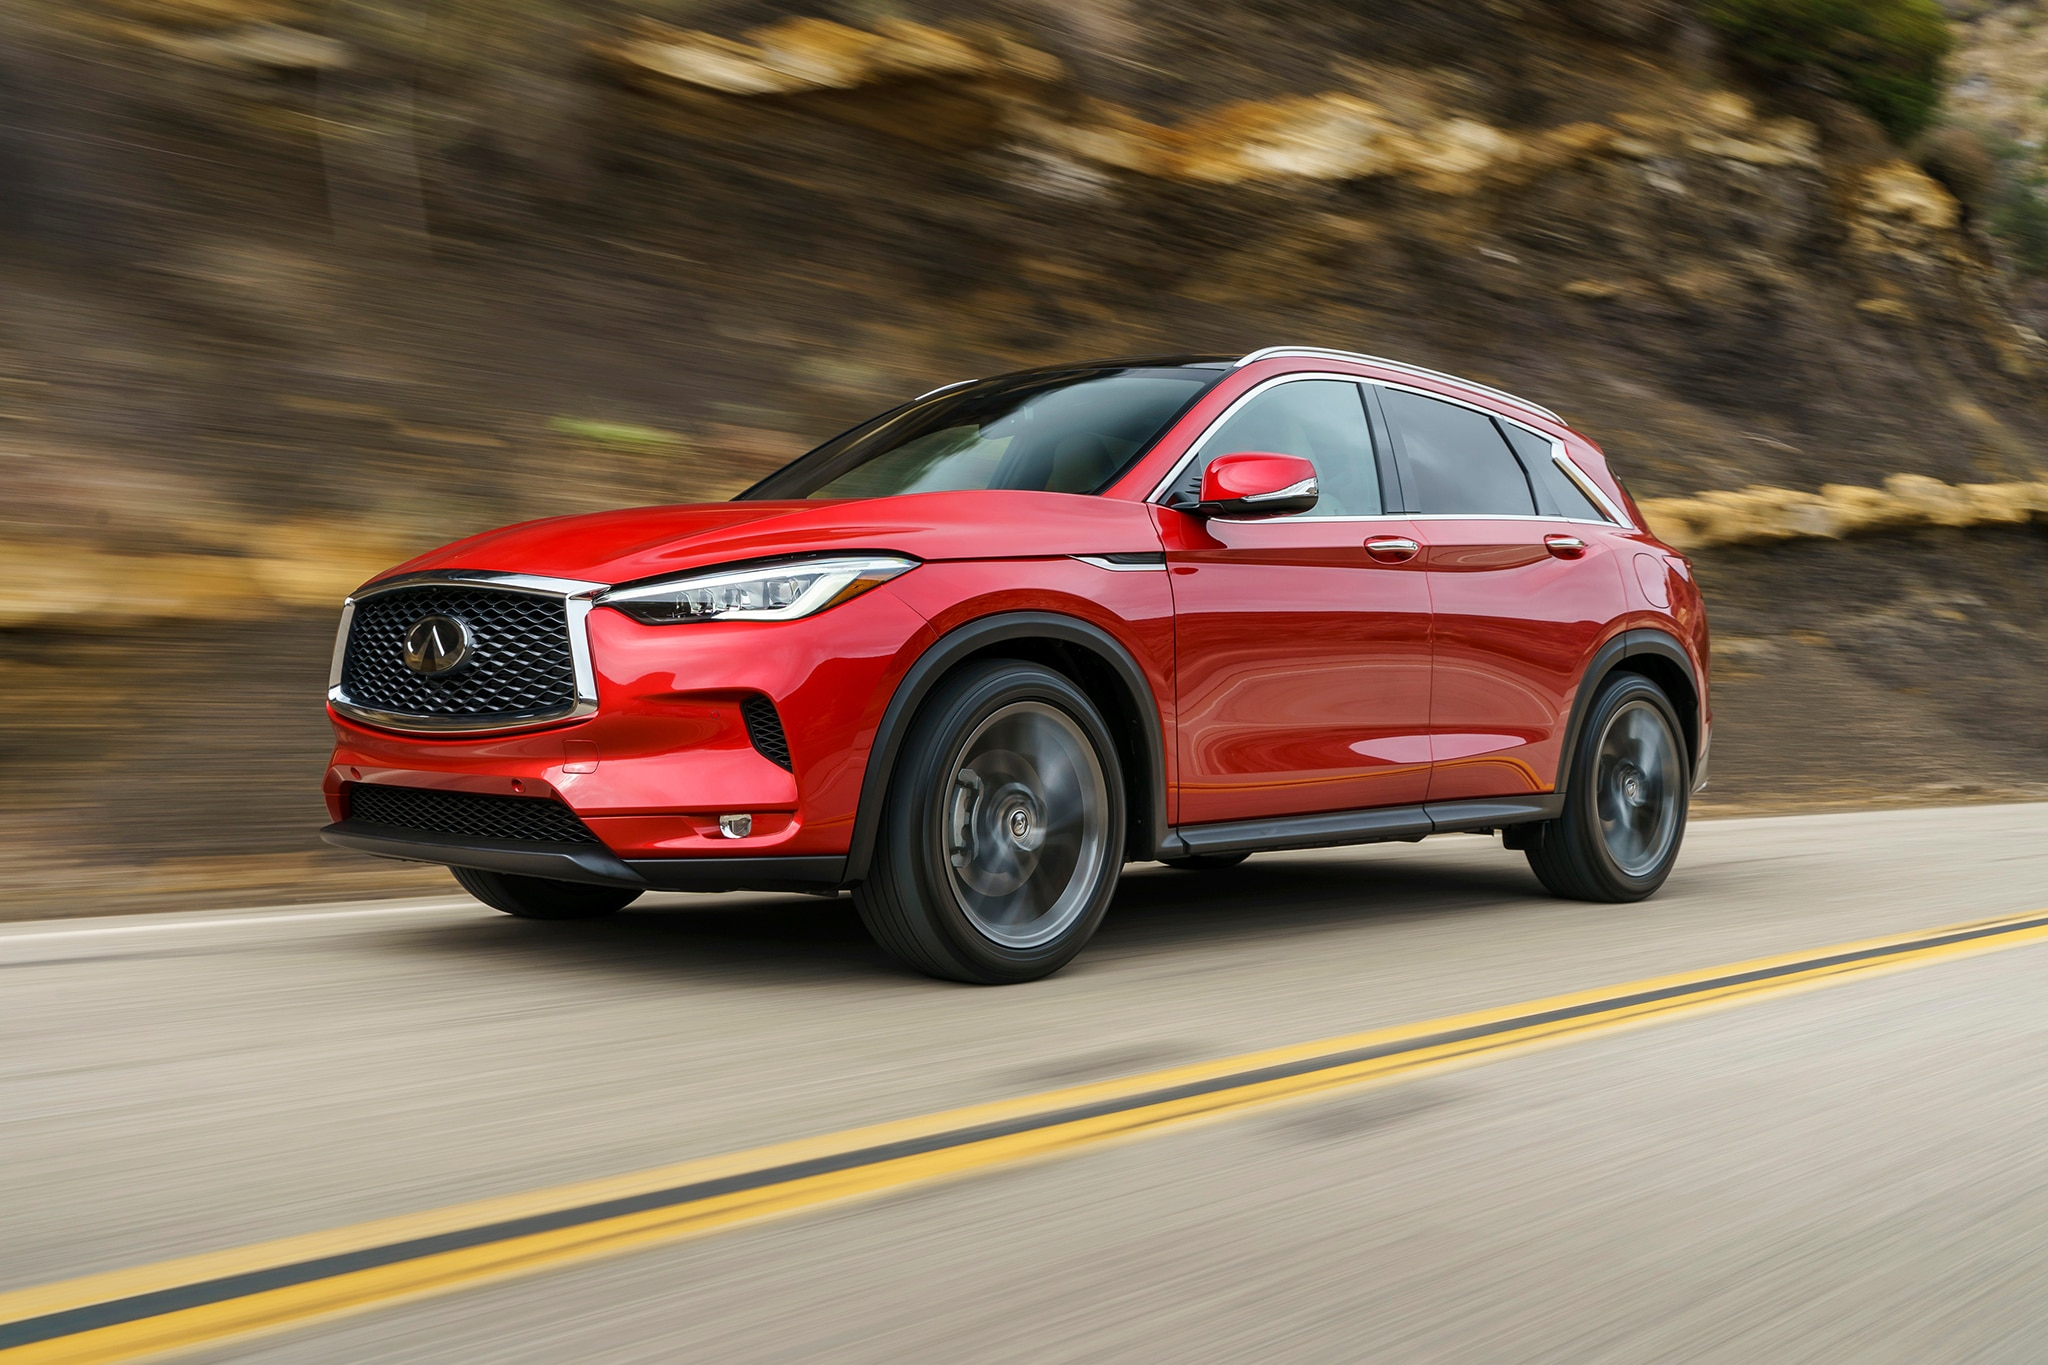 2019 Infiniti QX50 Front Three Quarter In Motion 09